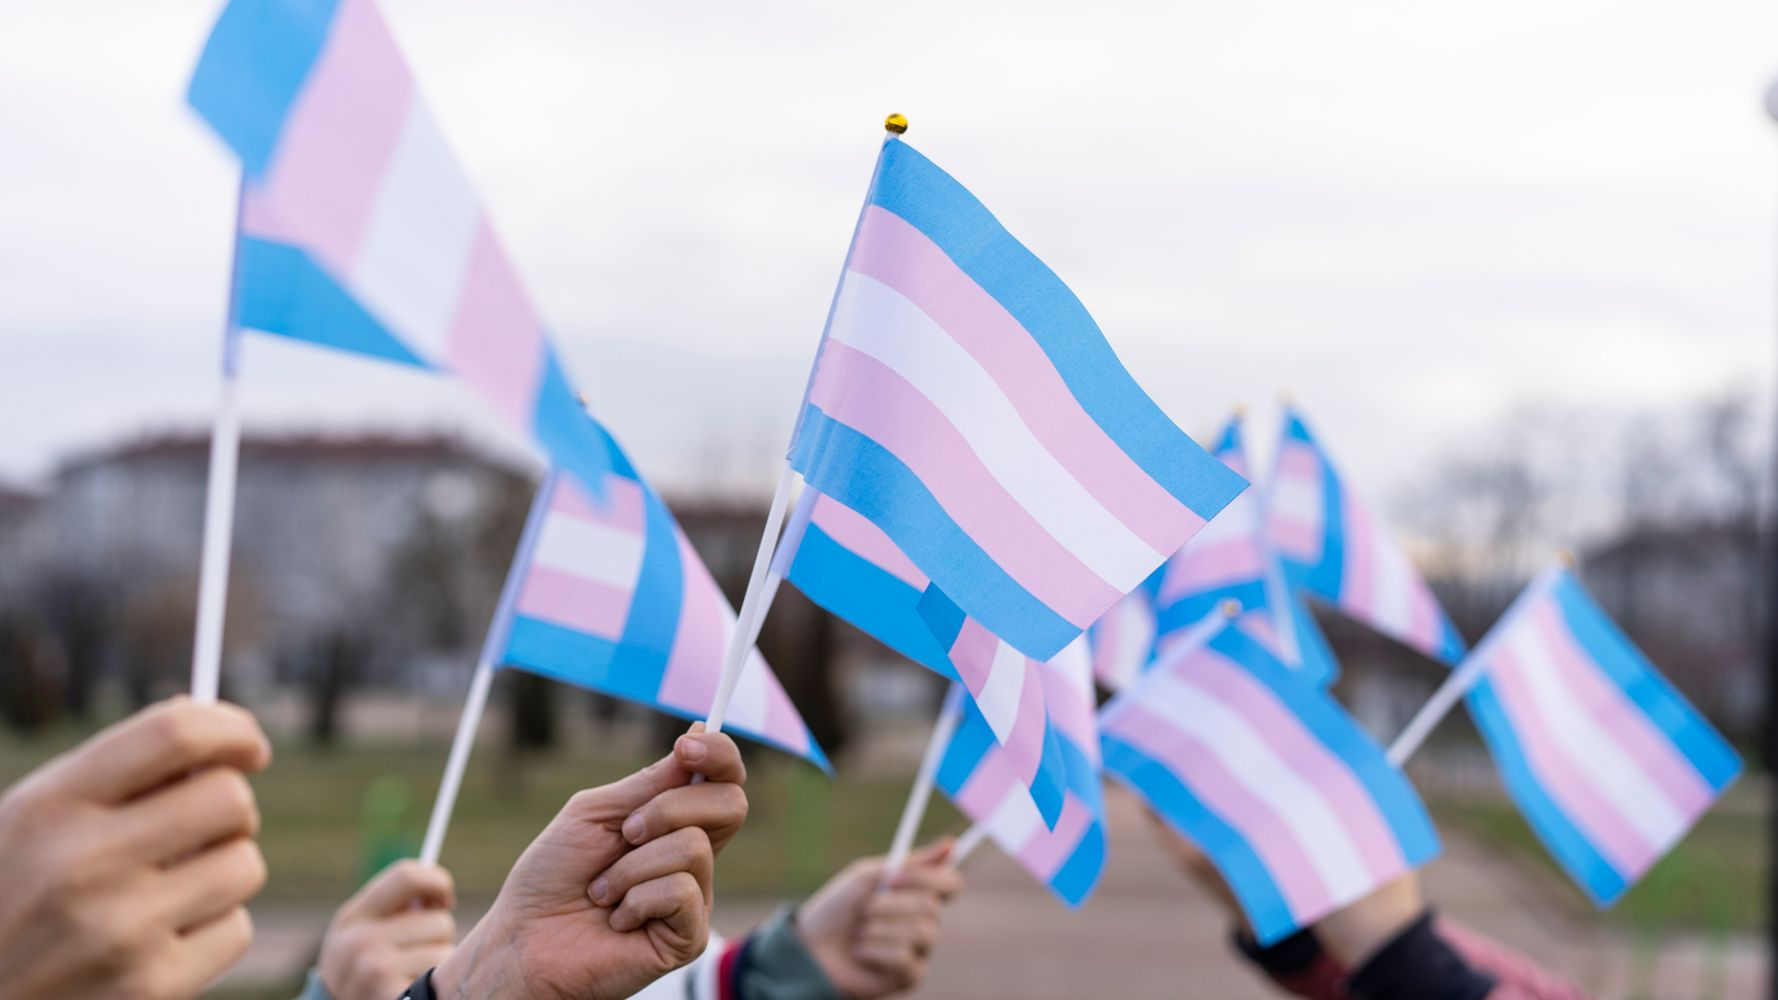 ACLU Sues Arkansas Over Anti-Trans Law Limiting Health Care For Youth